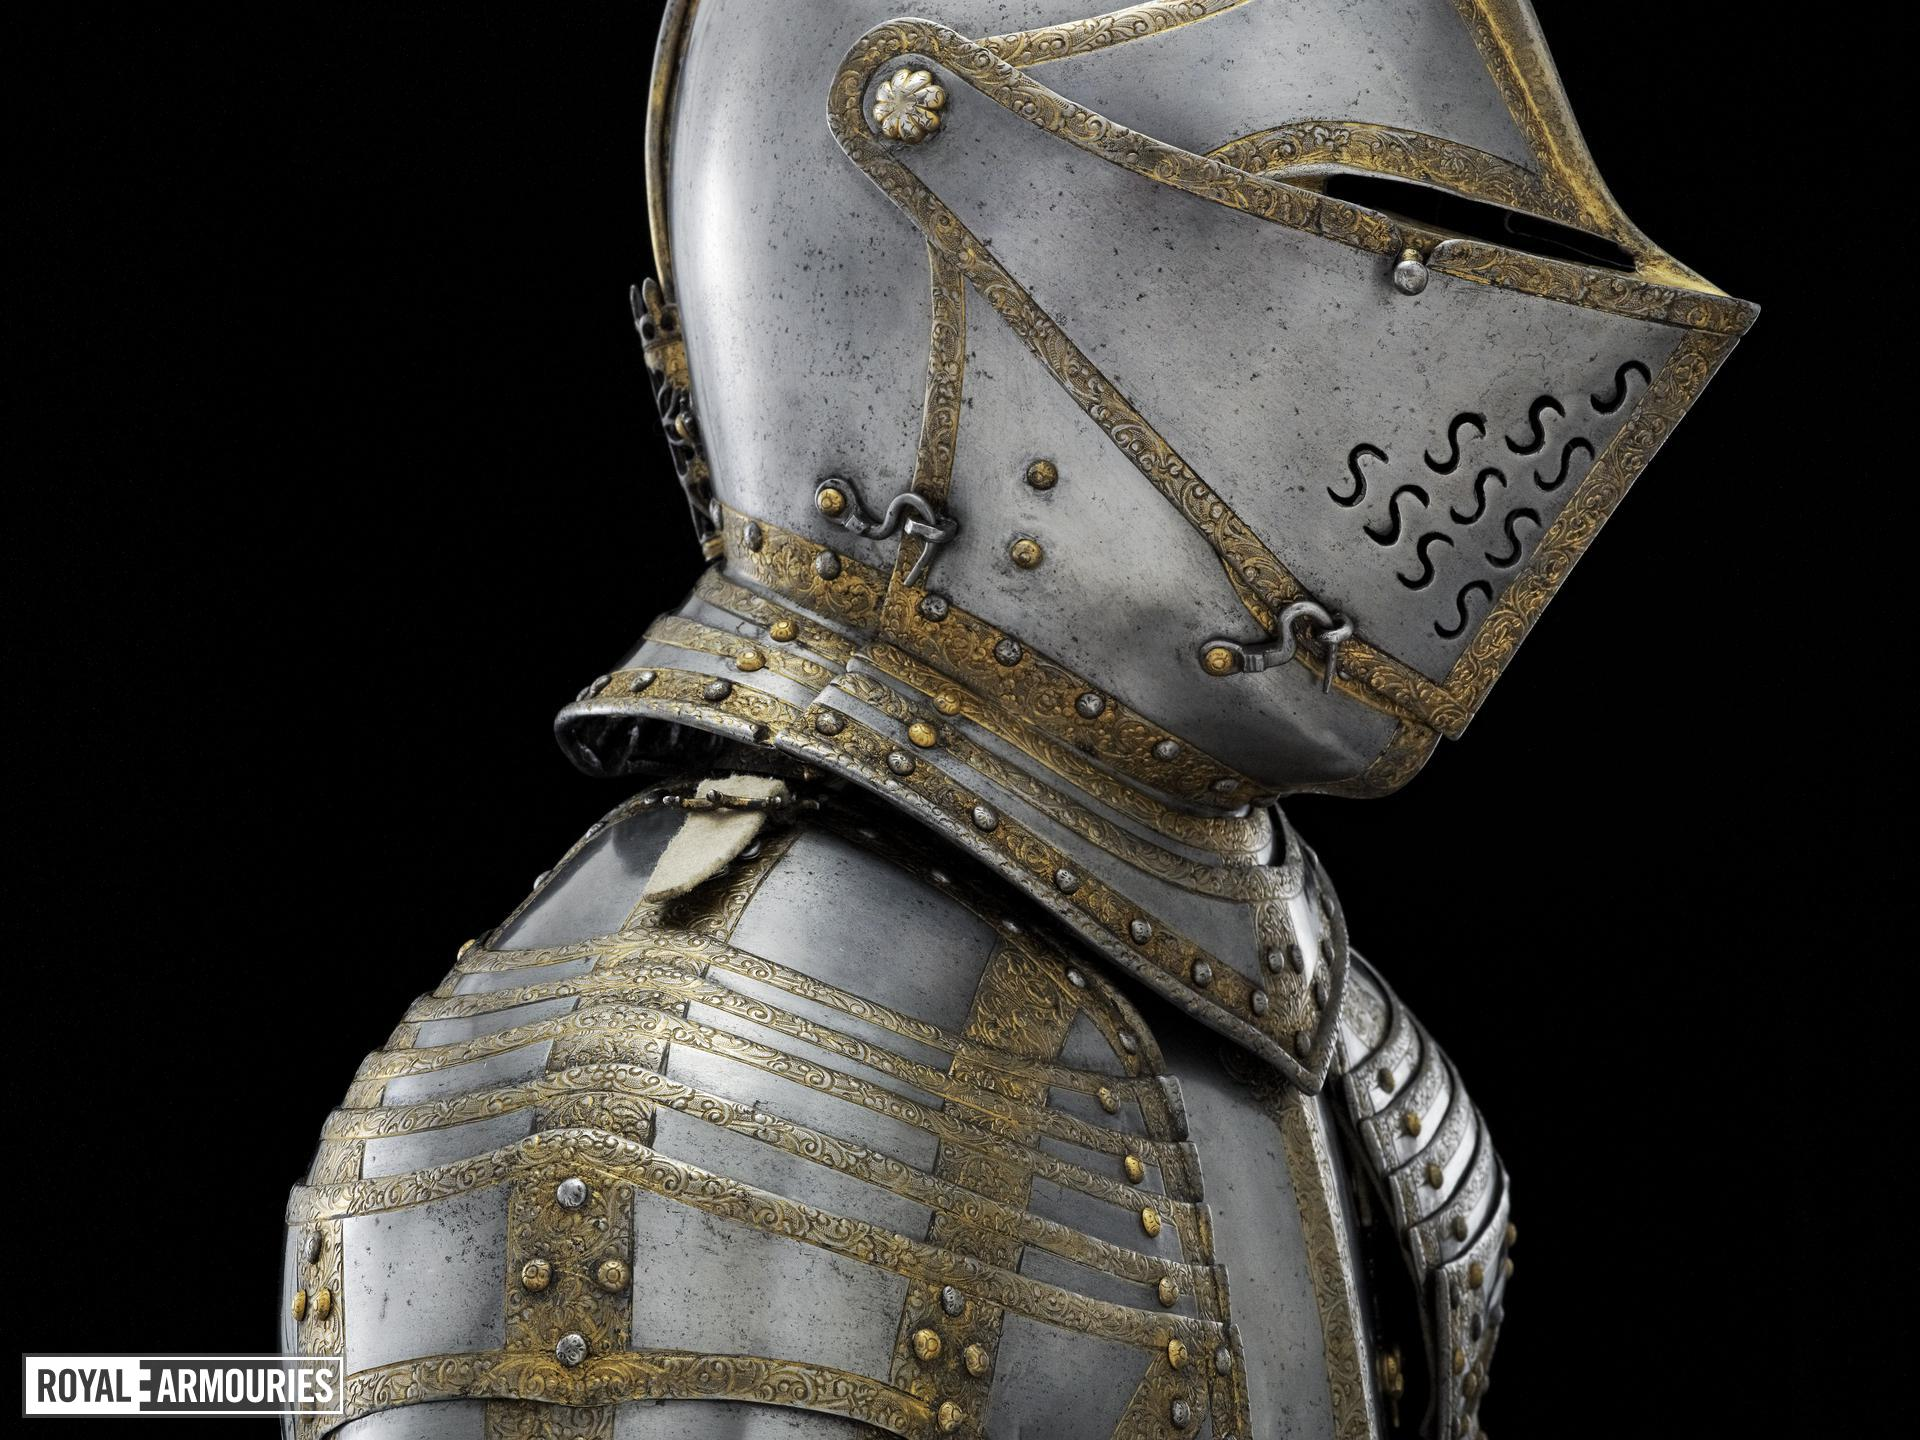 Armour of King Charles I as a boy